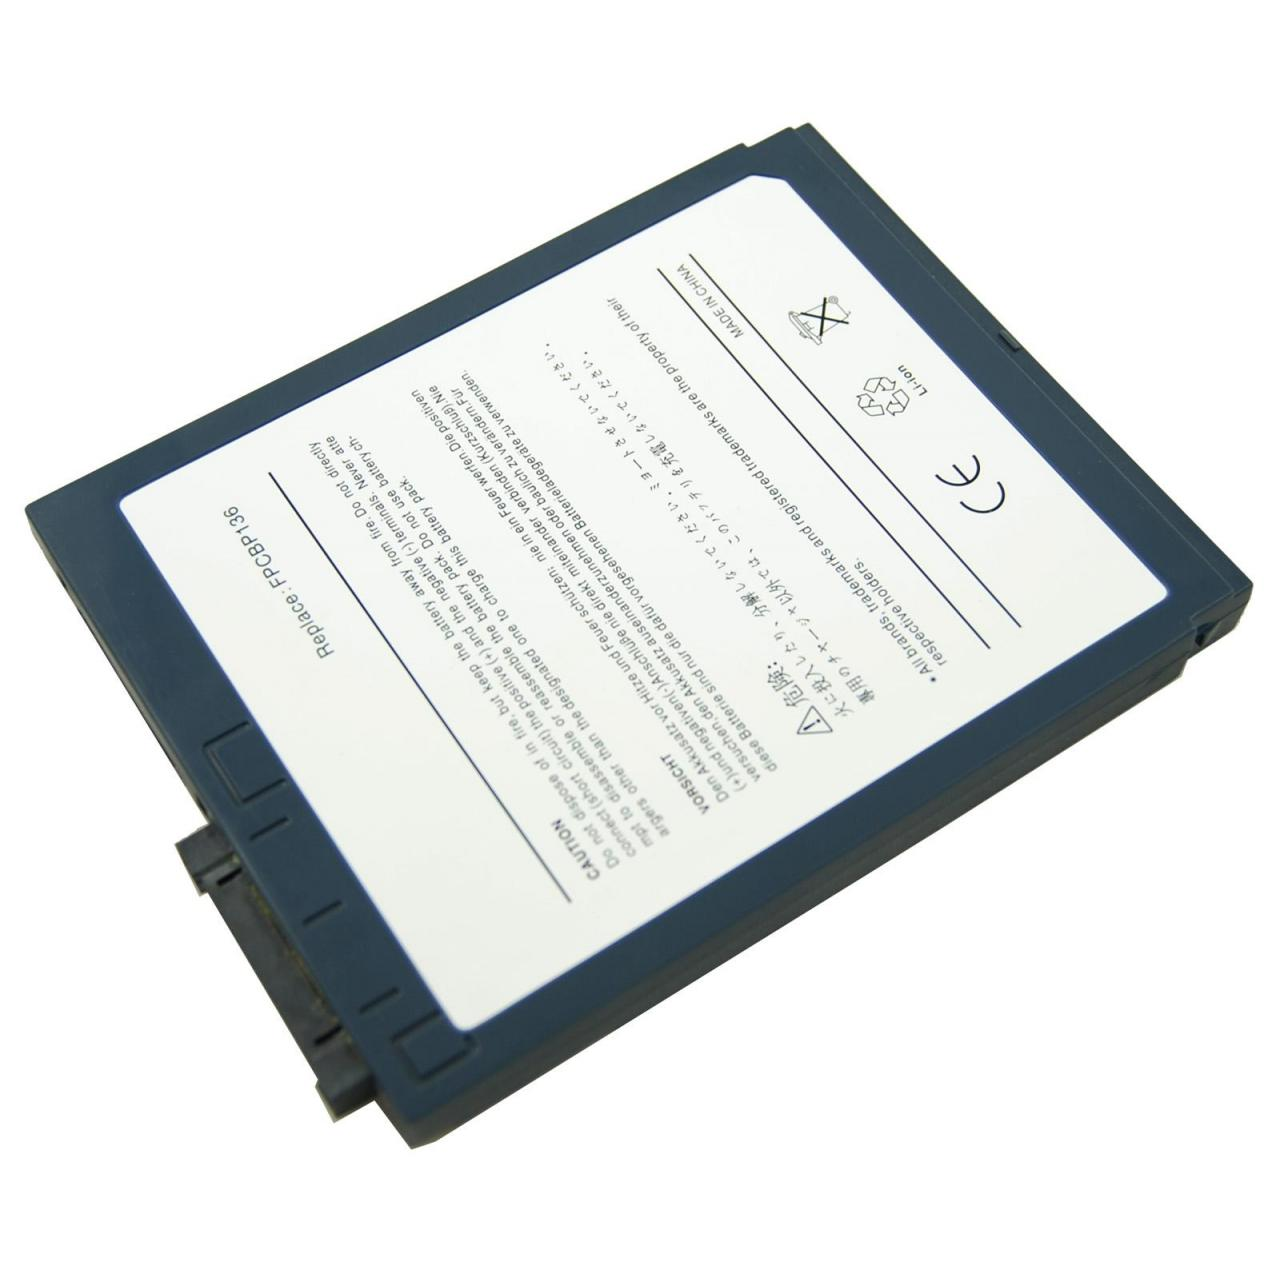 China FUJITSU laptop batteries E8010 FPCBP136 on sale